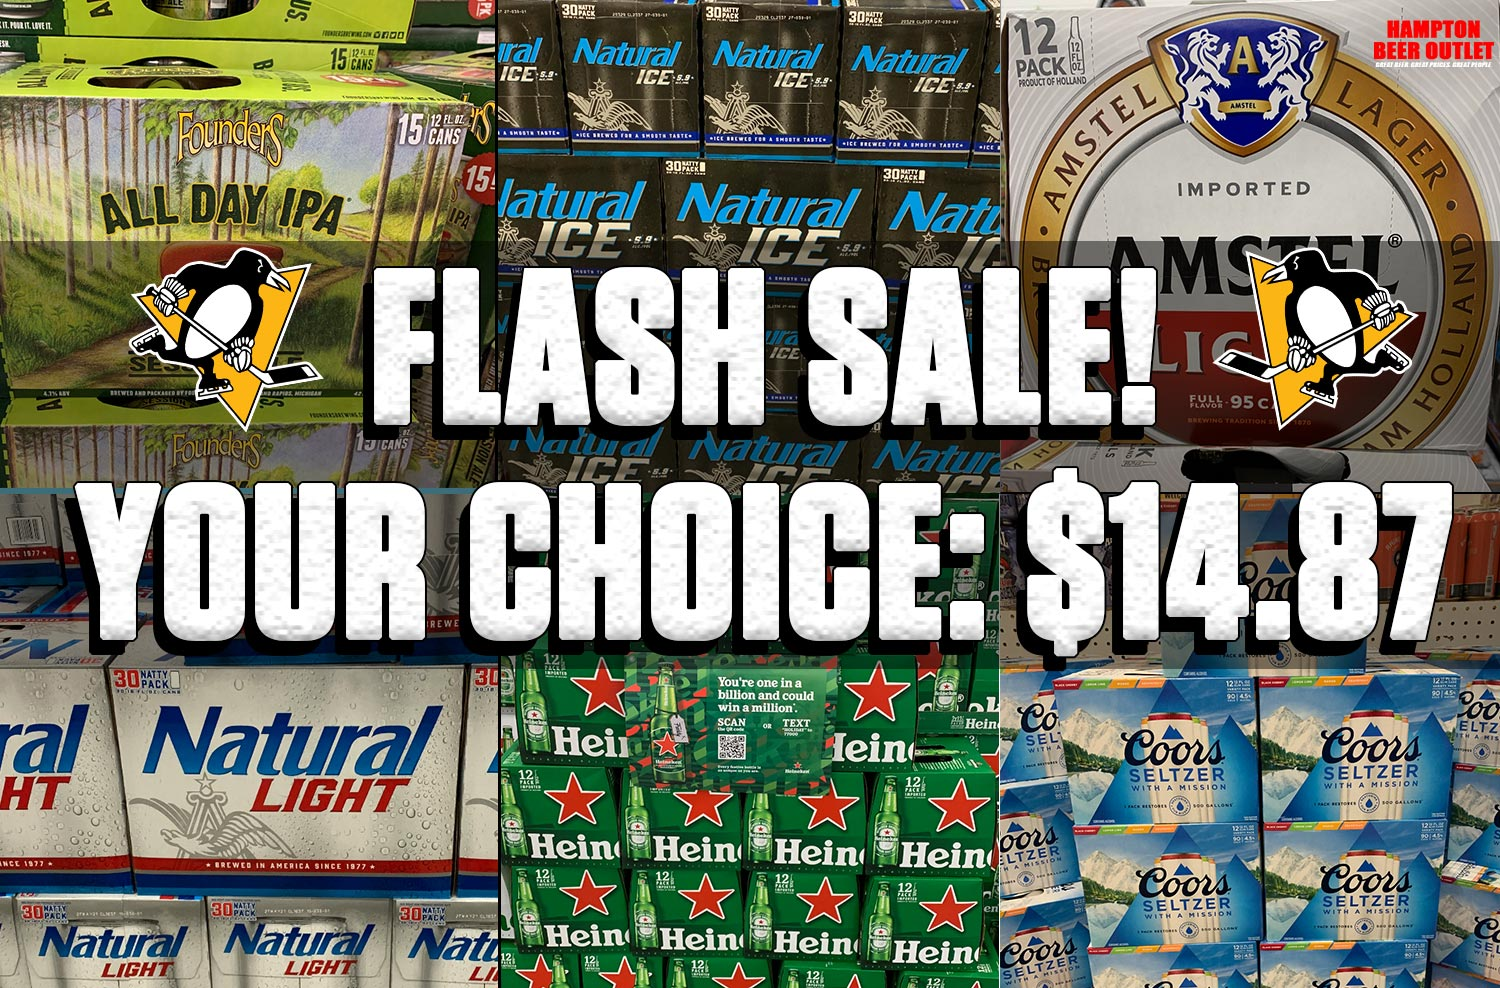 flash-sale-choice-pittsburgh-penguins-hampton-beer-outlet